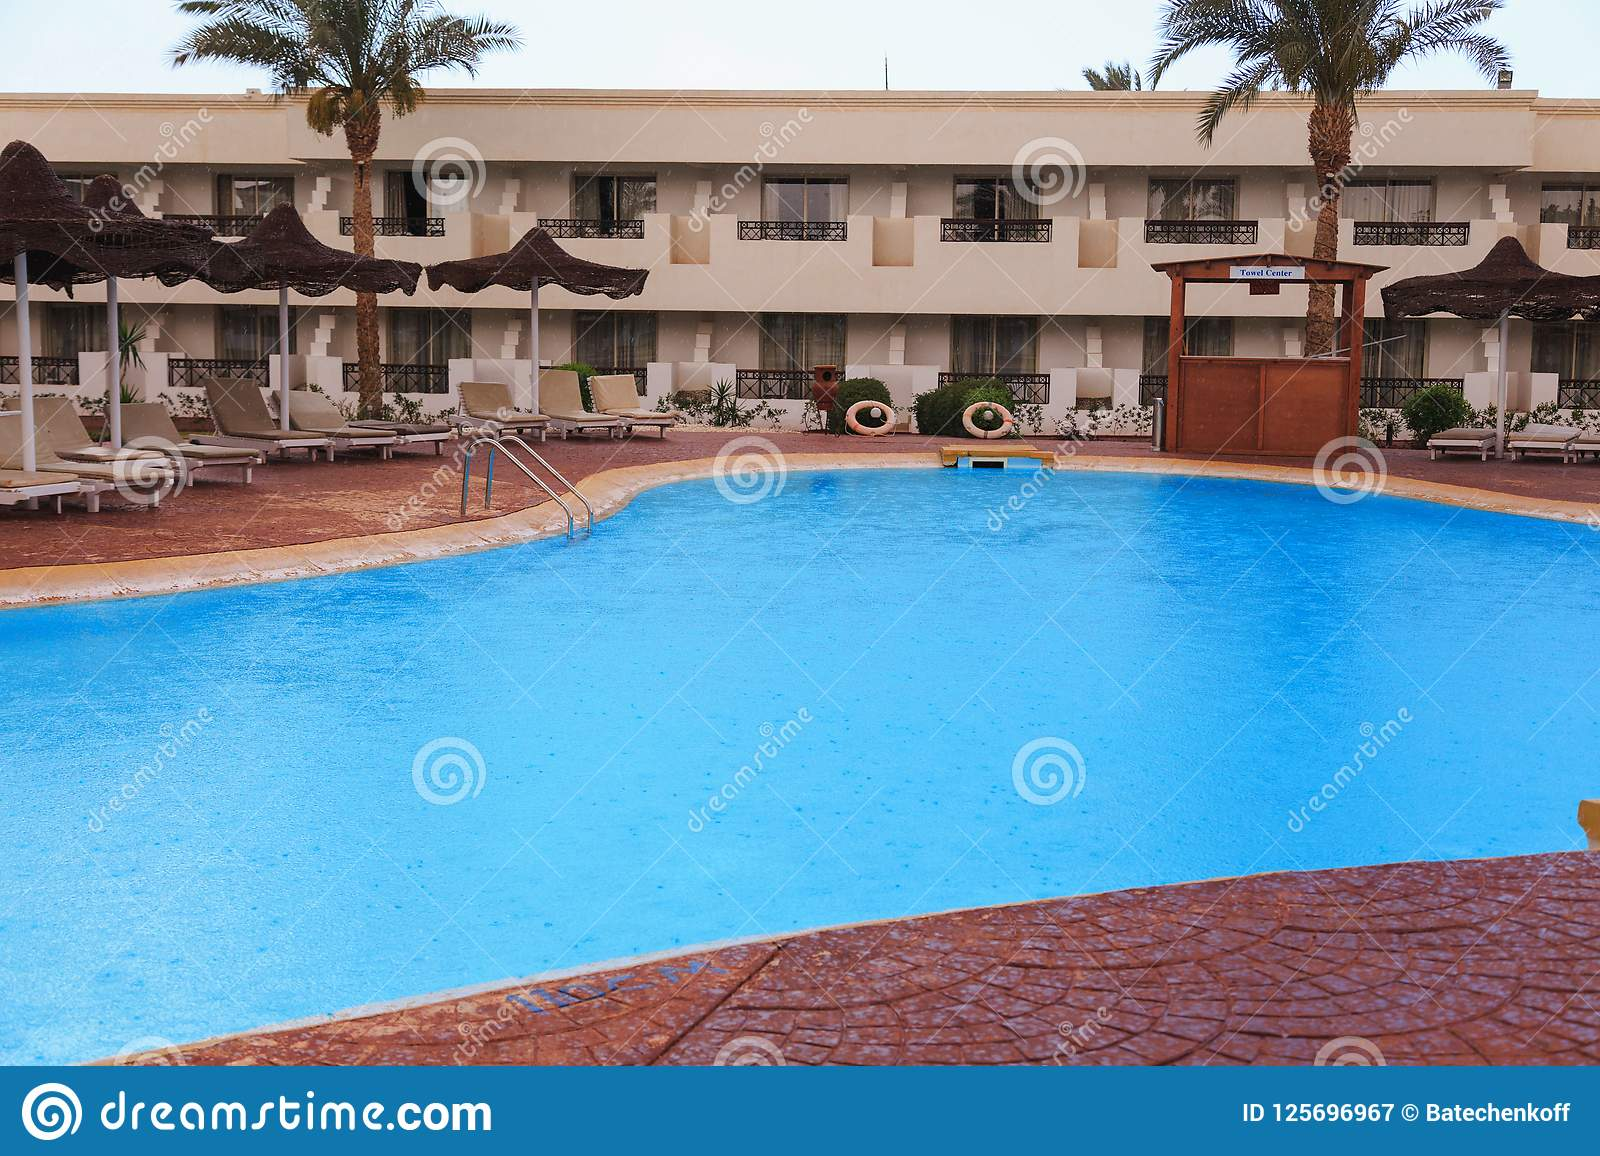 Swimming pool area in the hotel